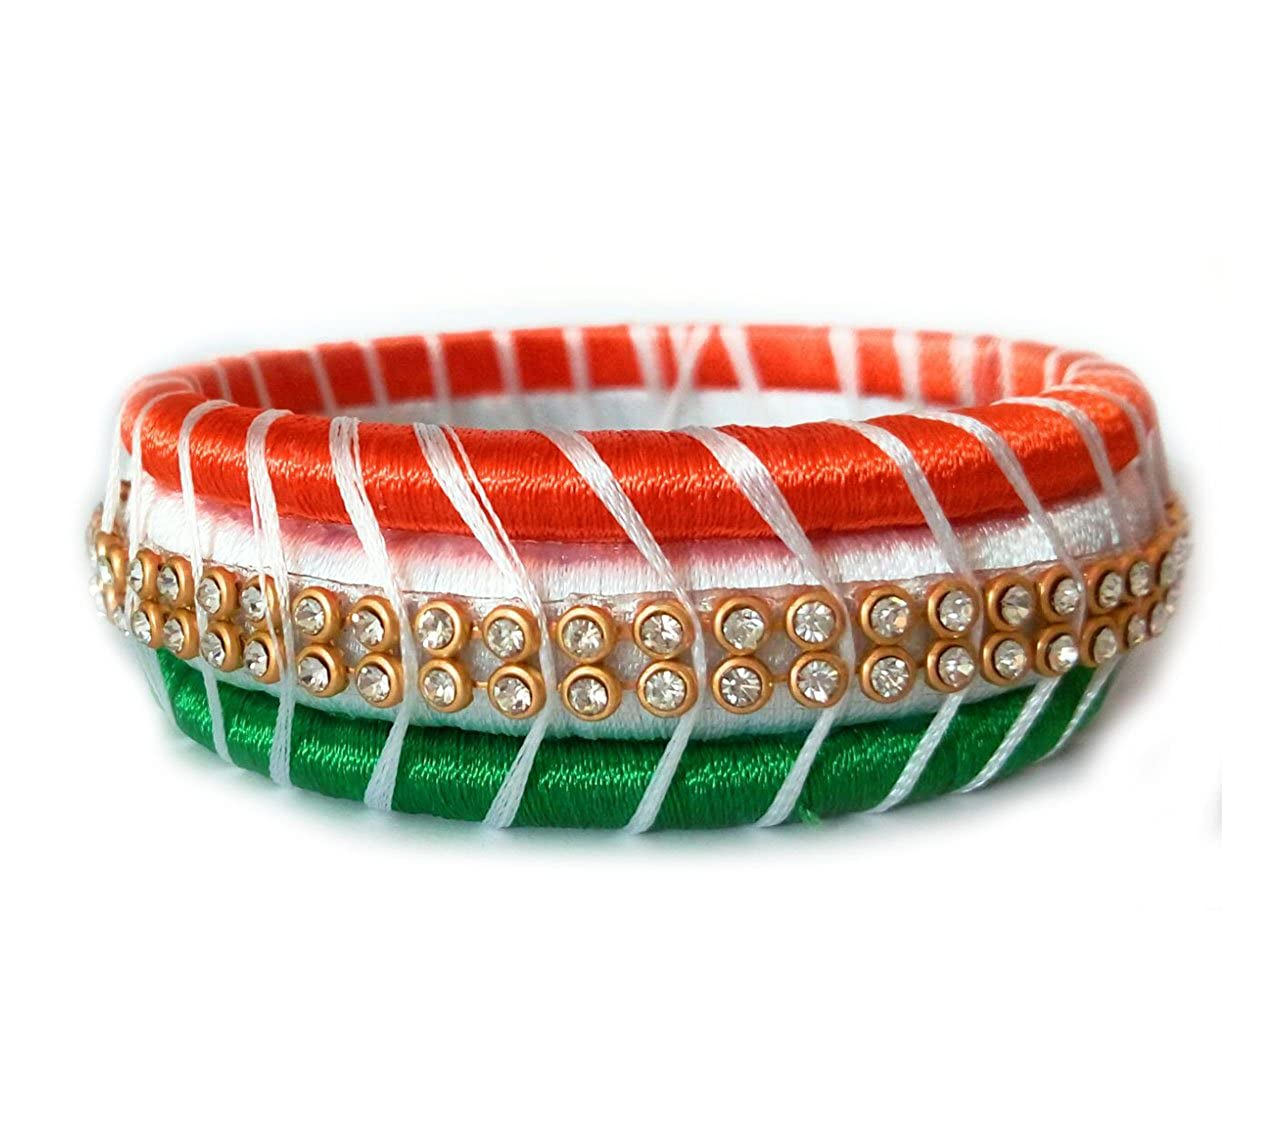 tricolor chic bangles and choodi tircolor bangle fancy sharp hbbc set